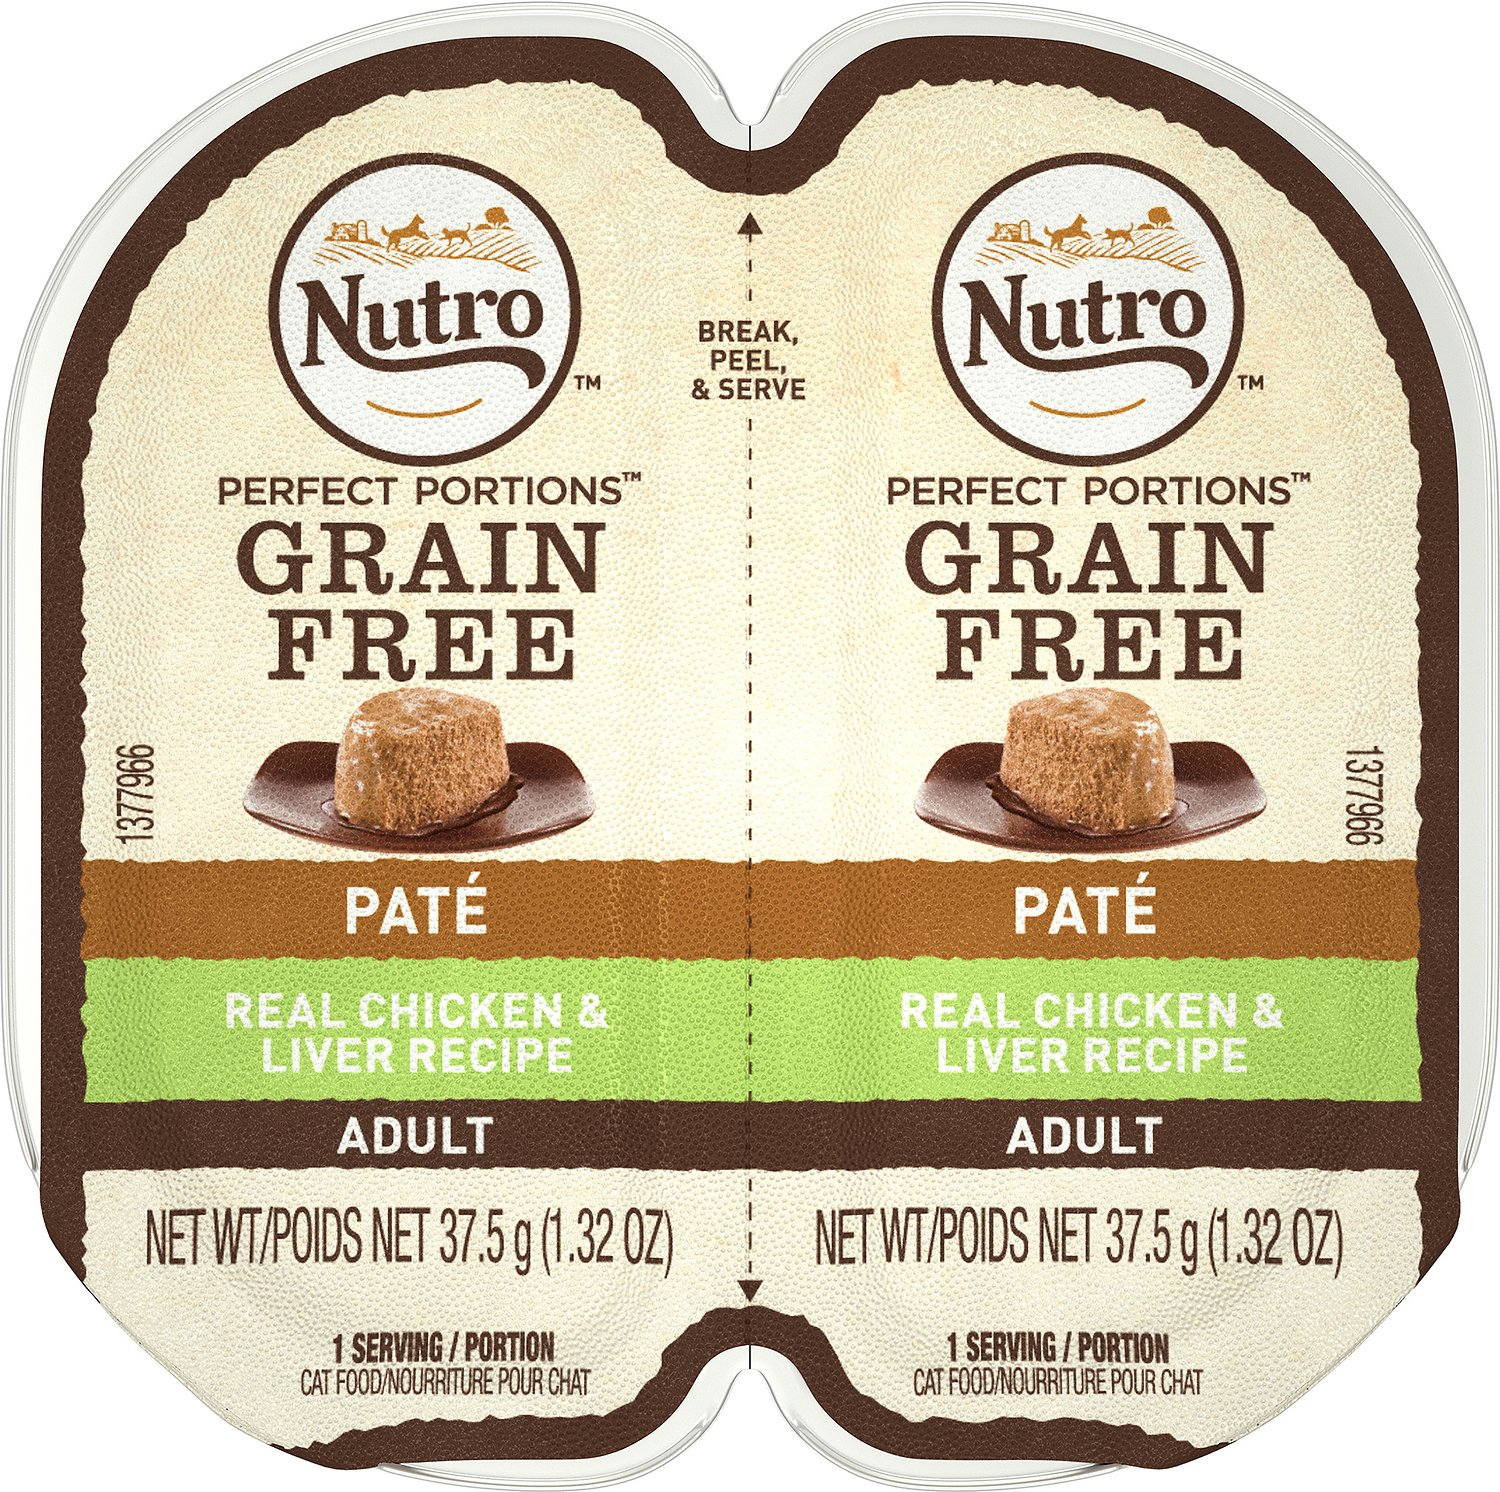 Nutro Perfect Portions Grain-Free Chicken & Liver Recipe Cat Food Trays Image